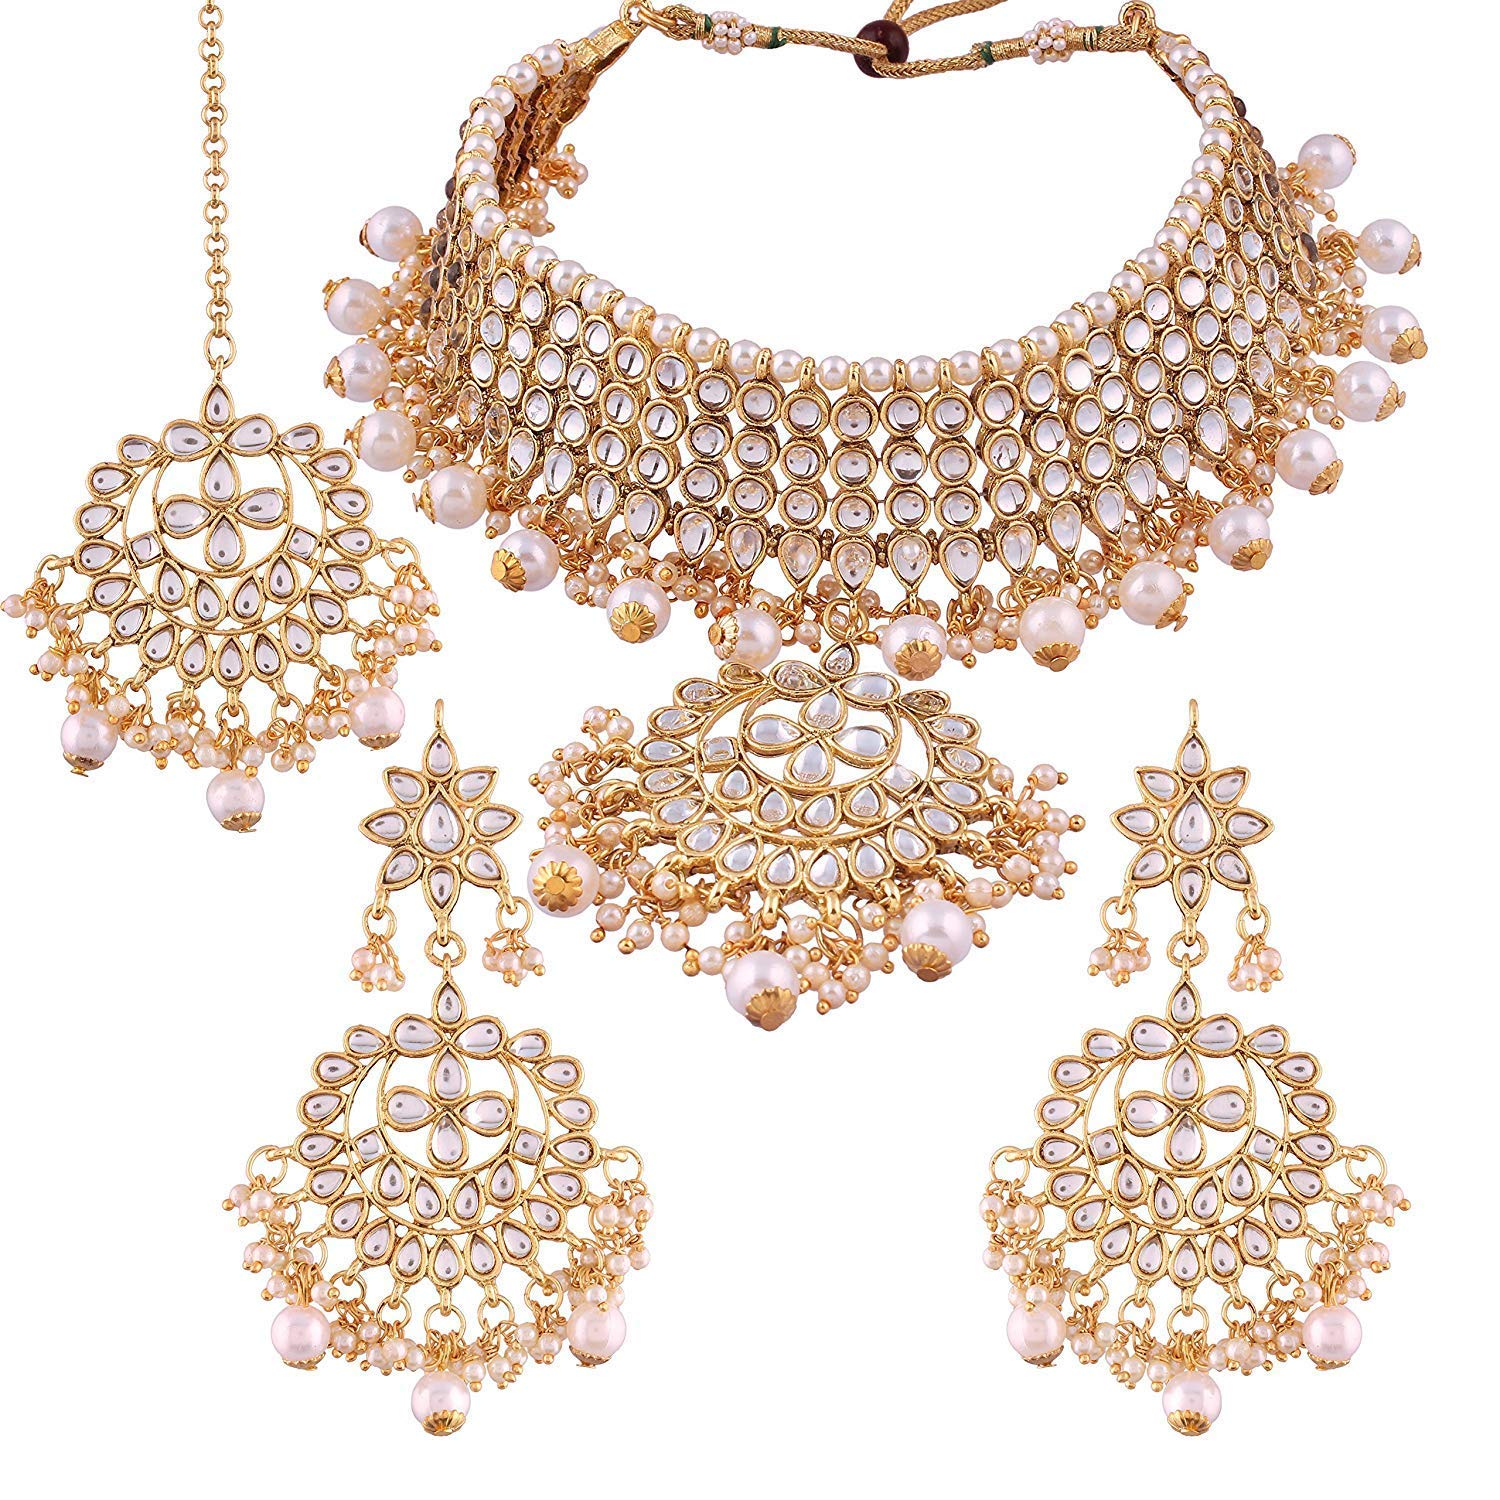 Aheli Indian Traditional Maang Tikka with Kundan Necklace Earrings Set Ethnic Wedding Party Designer Jewelry for Women (White)